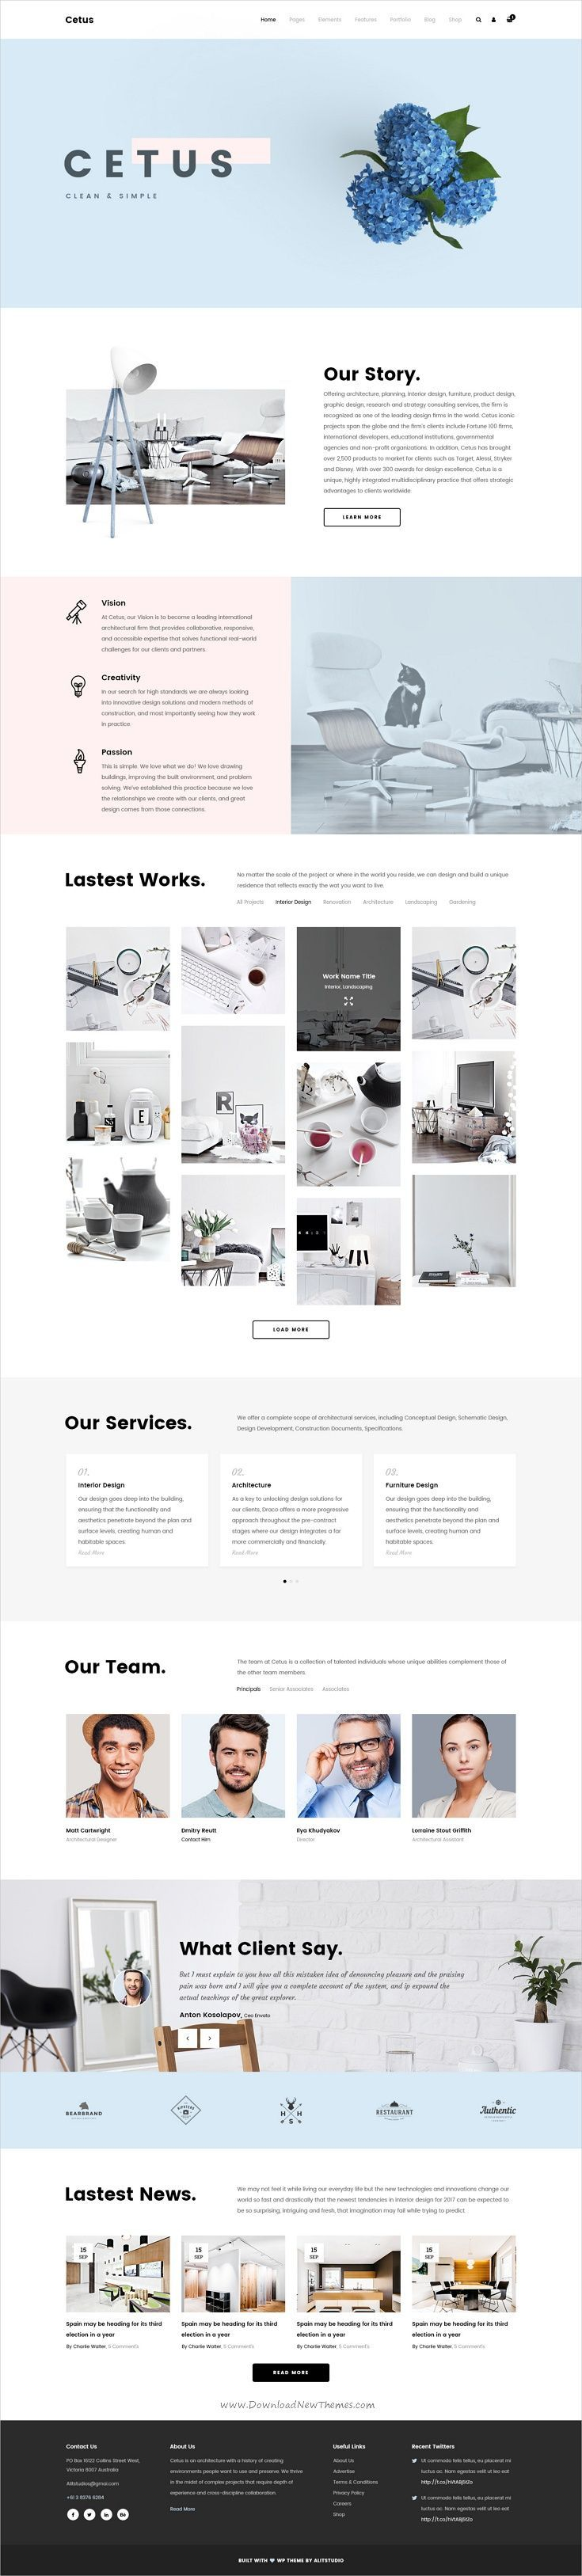 Cetus is a wonderful creative #PSD template for #webdesign multipurpose #portfolio websites with 8 unique homepages, 30 incredible portfolio layout & 94 awesome PSD pages download now➩  https://themeforest.net/item/cetus-creative-portfolio-psd-template/19361309?ref=Datasata  - No site #ThemeForest encontra os melhores #Templates & #Plugins para #Wordpress. Confira em http://www.estrategiadigital.pt/themeforest-templates-wordpress/